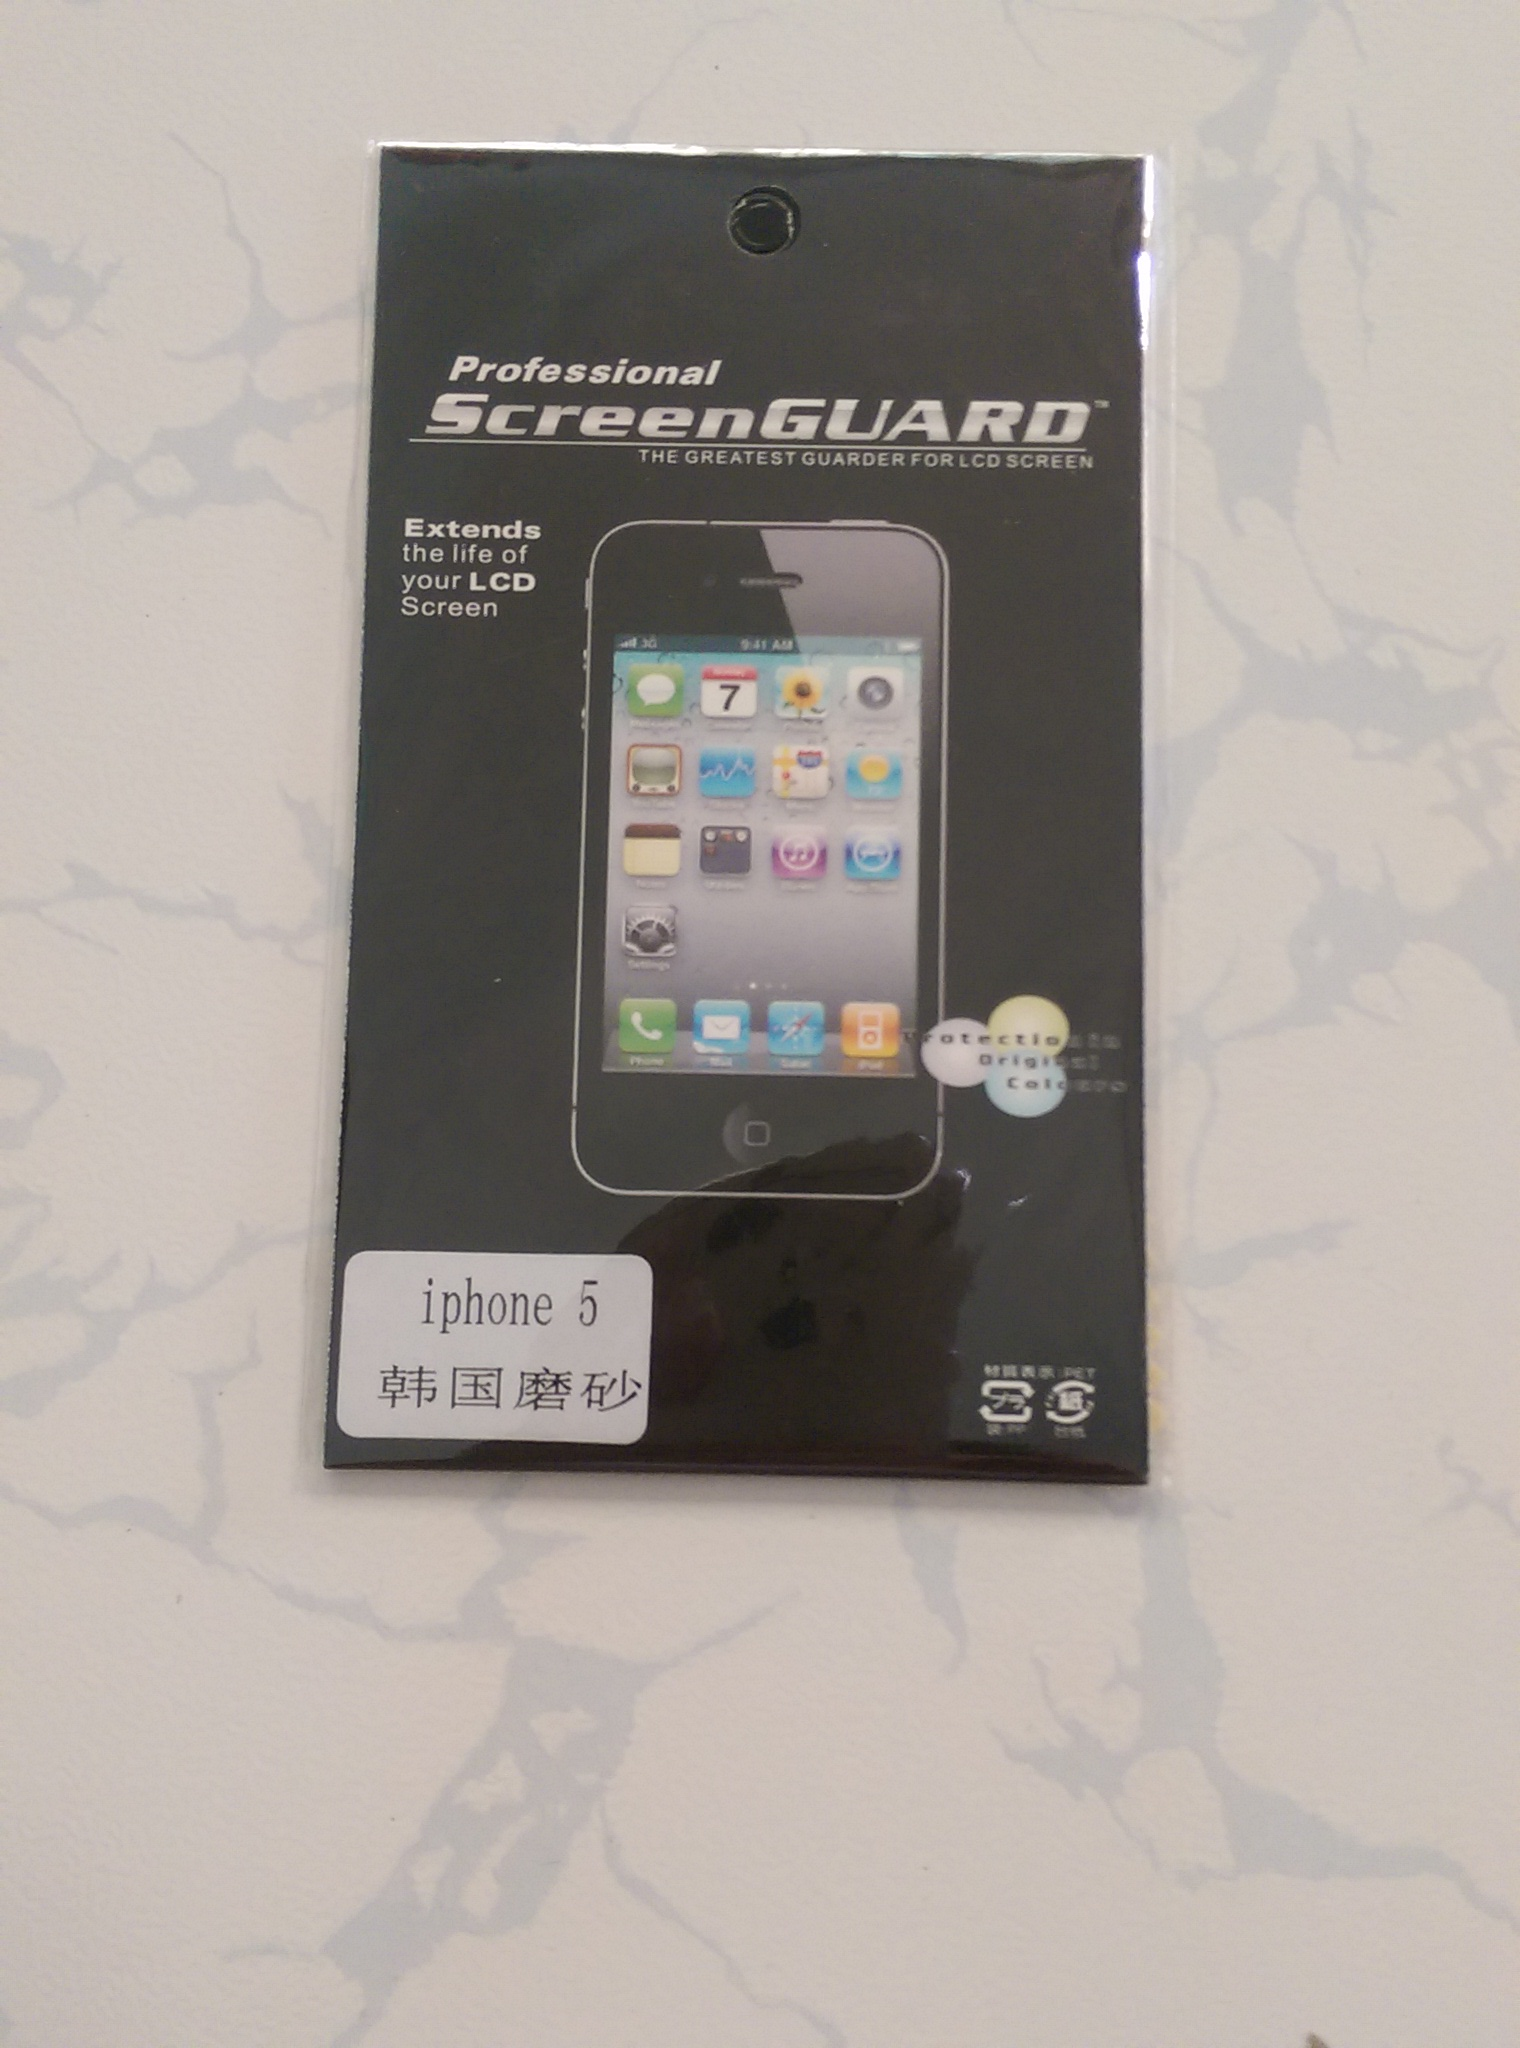 Screen Protector Clearance Sale Find any screen protector from Iphone 4 to Samsung S6 Edge at an amazing low price